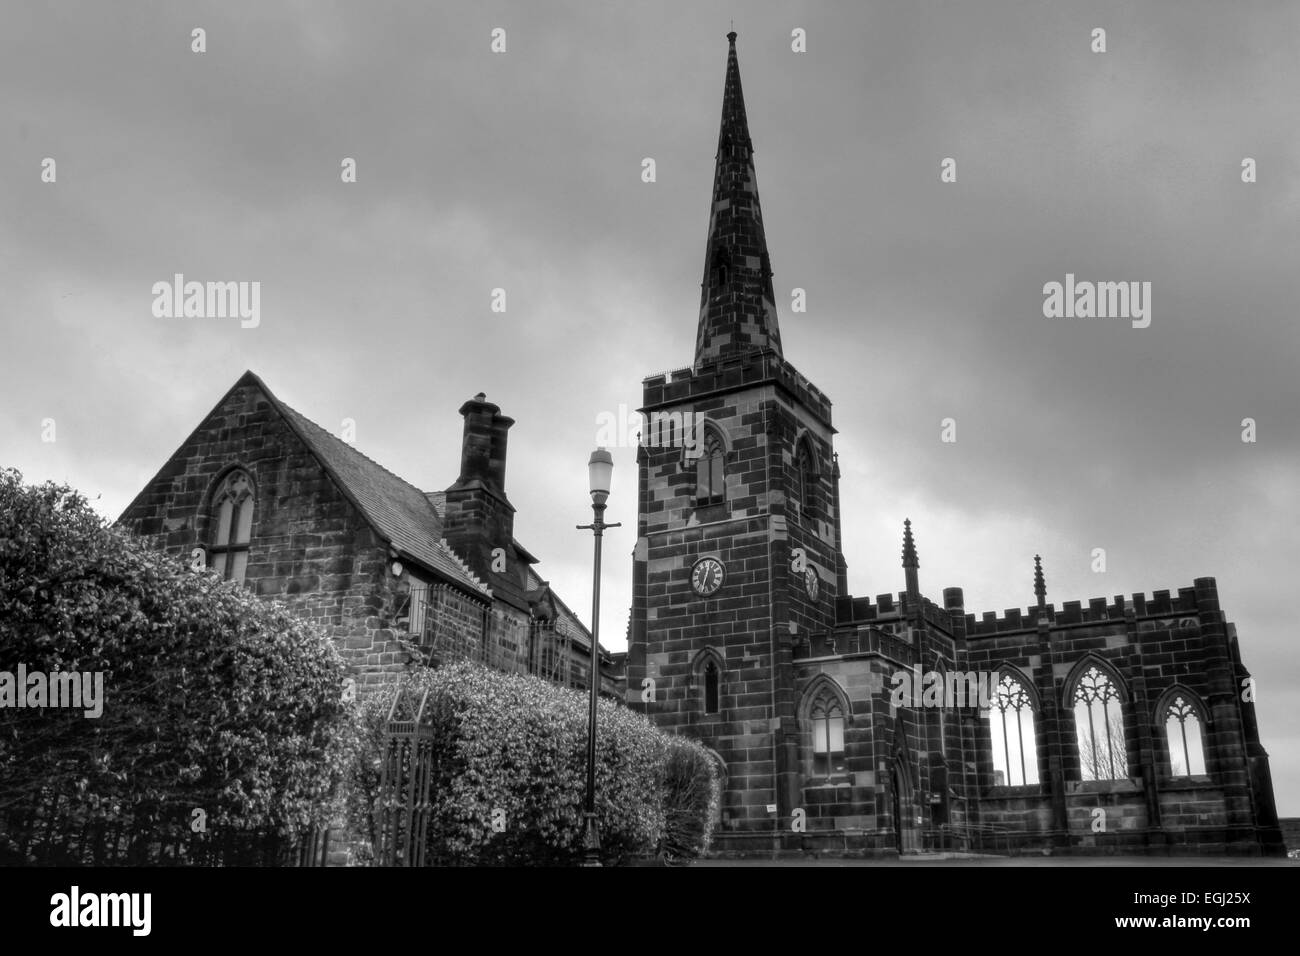 Black and White HDR Photograph Of Birkenhead Priory - Stock Image